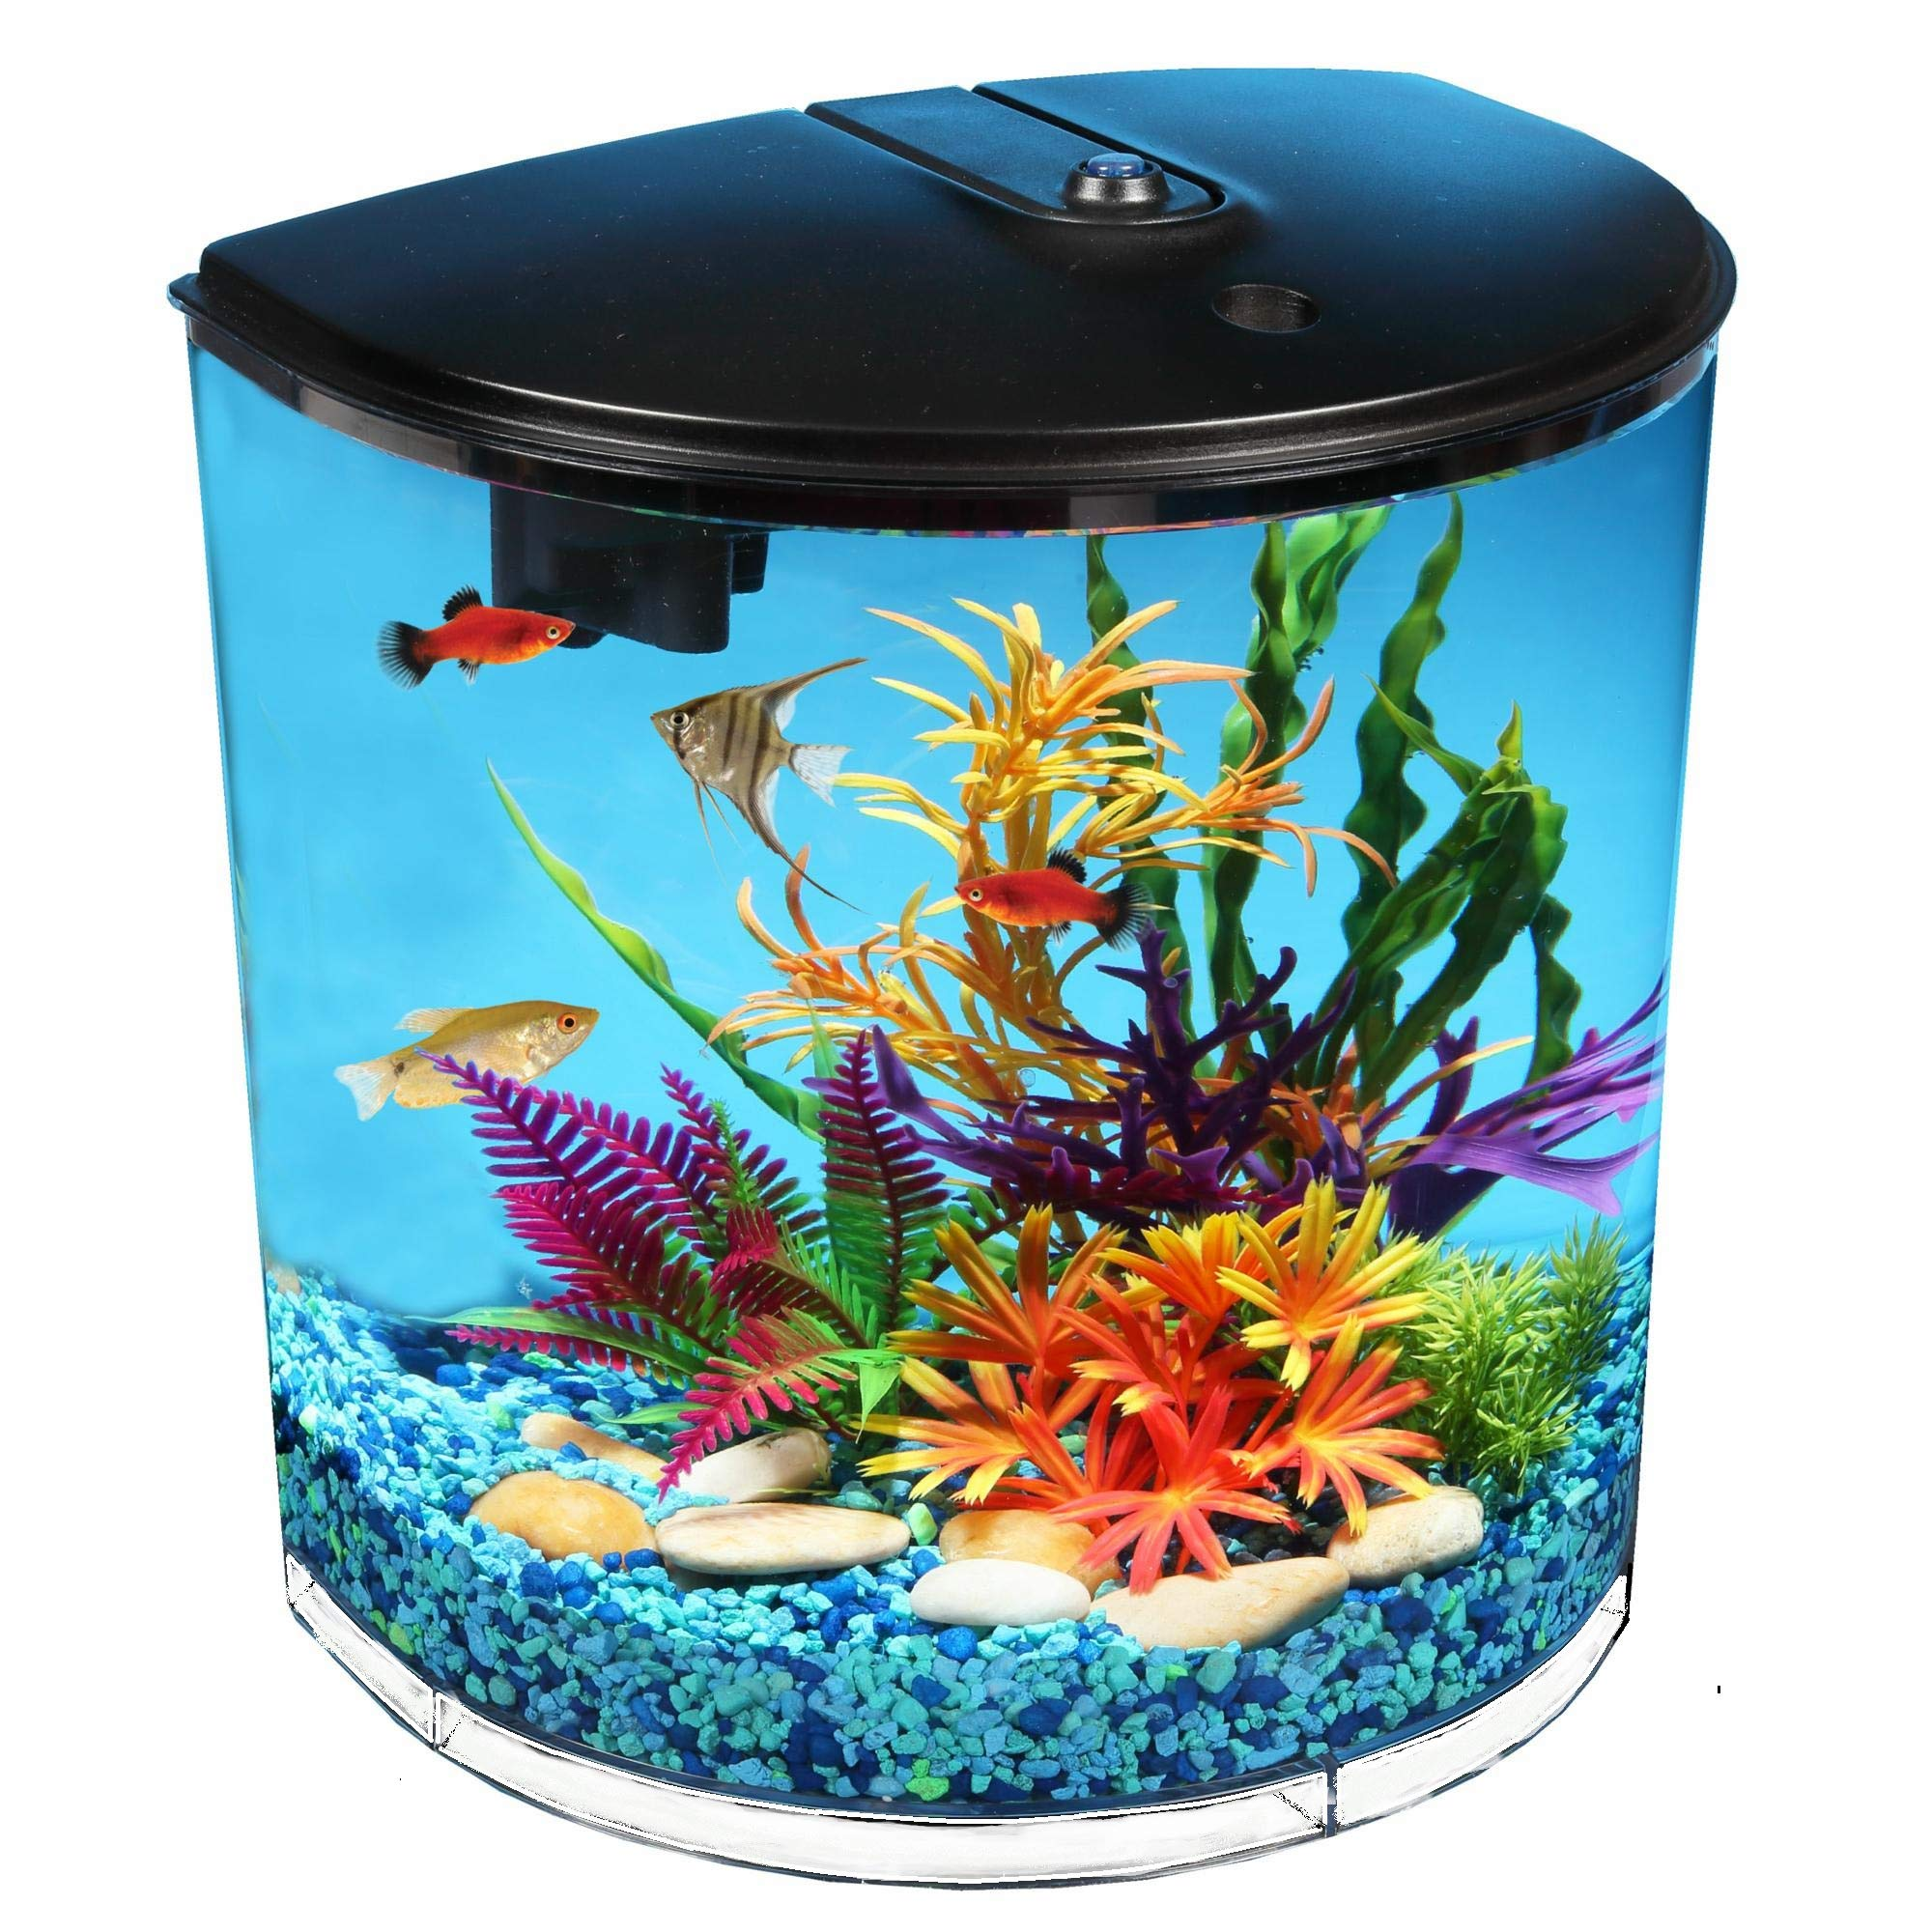 Koller Products 3.5-Gallon Aquarium with Power Filter, LED Lighting and 1-Year Supply of Filter Cartridges